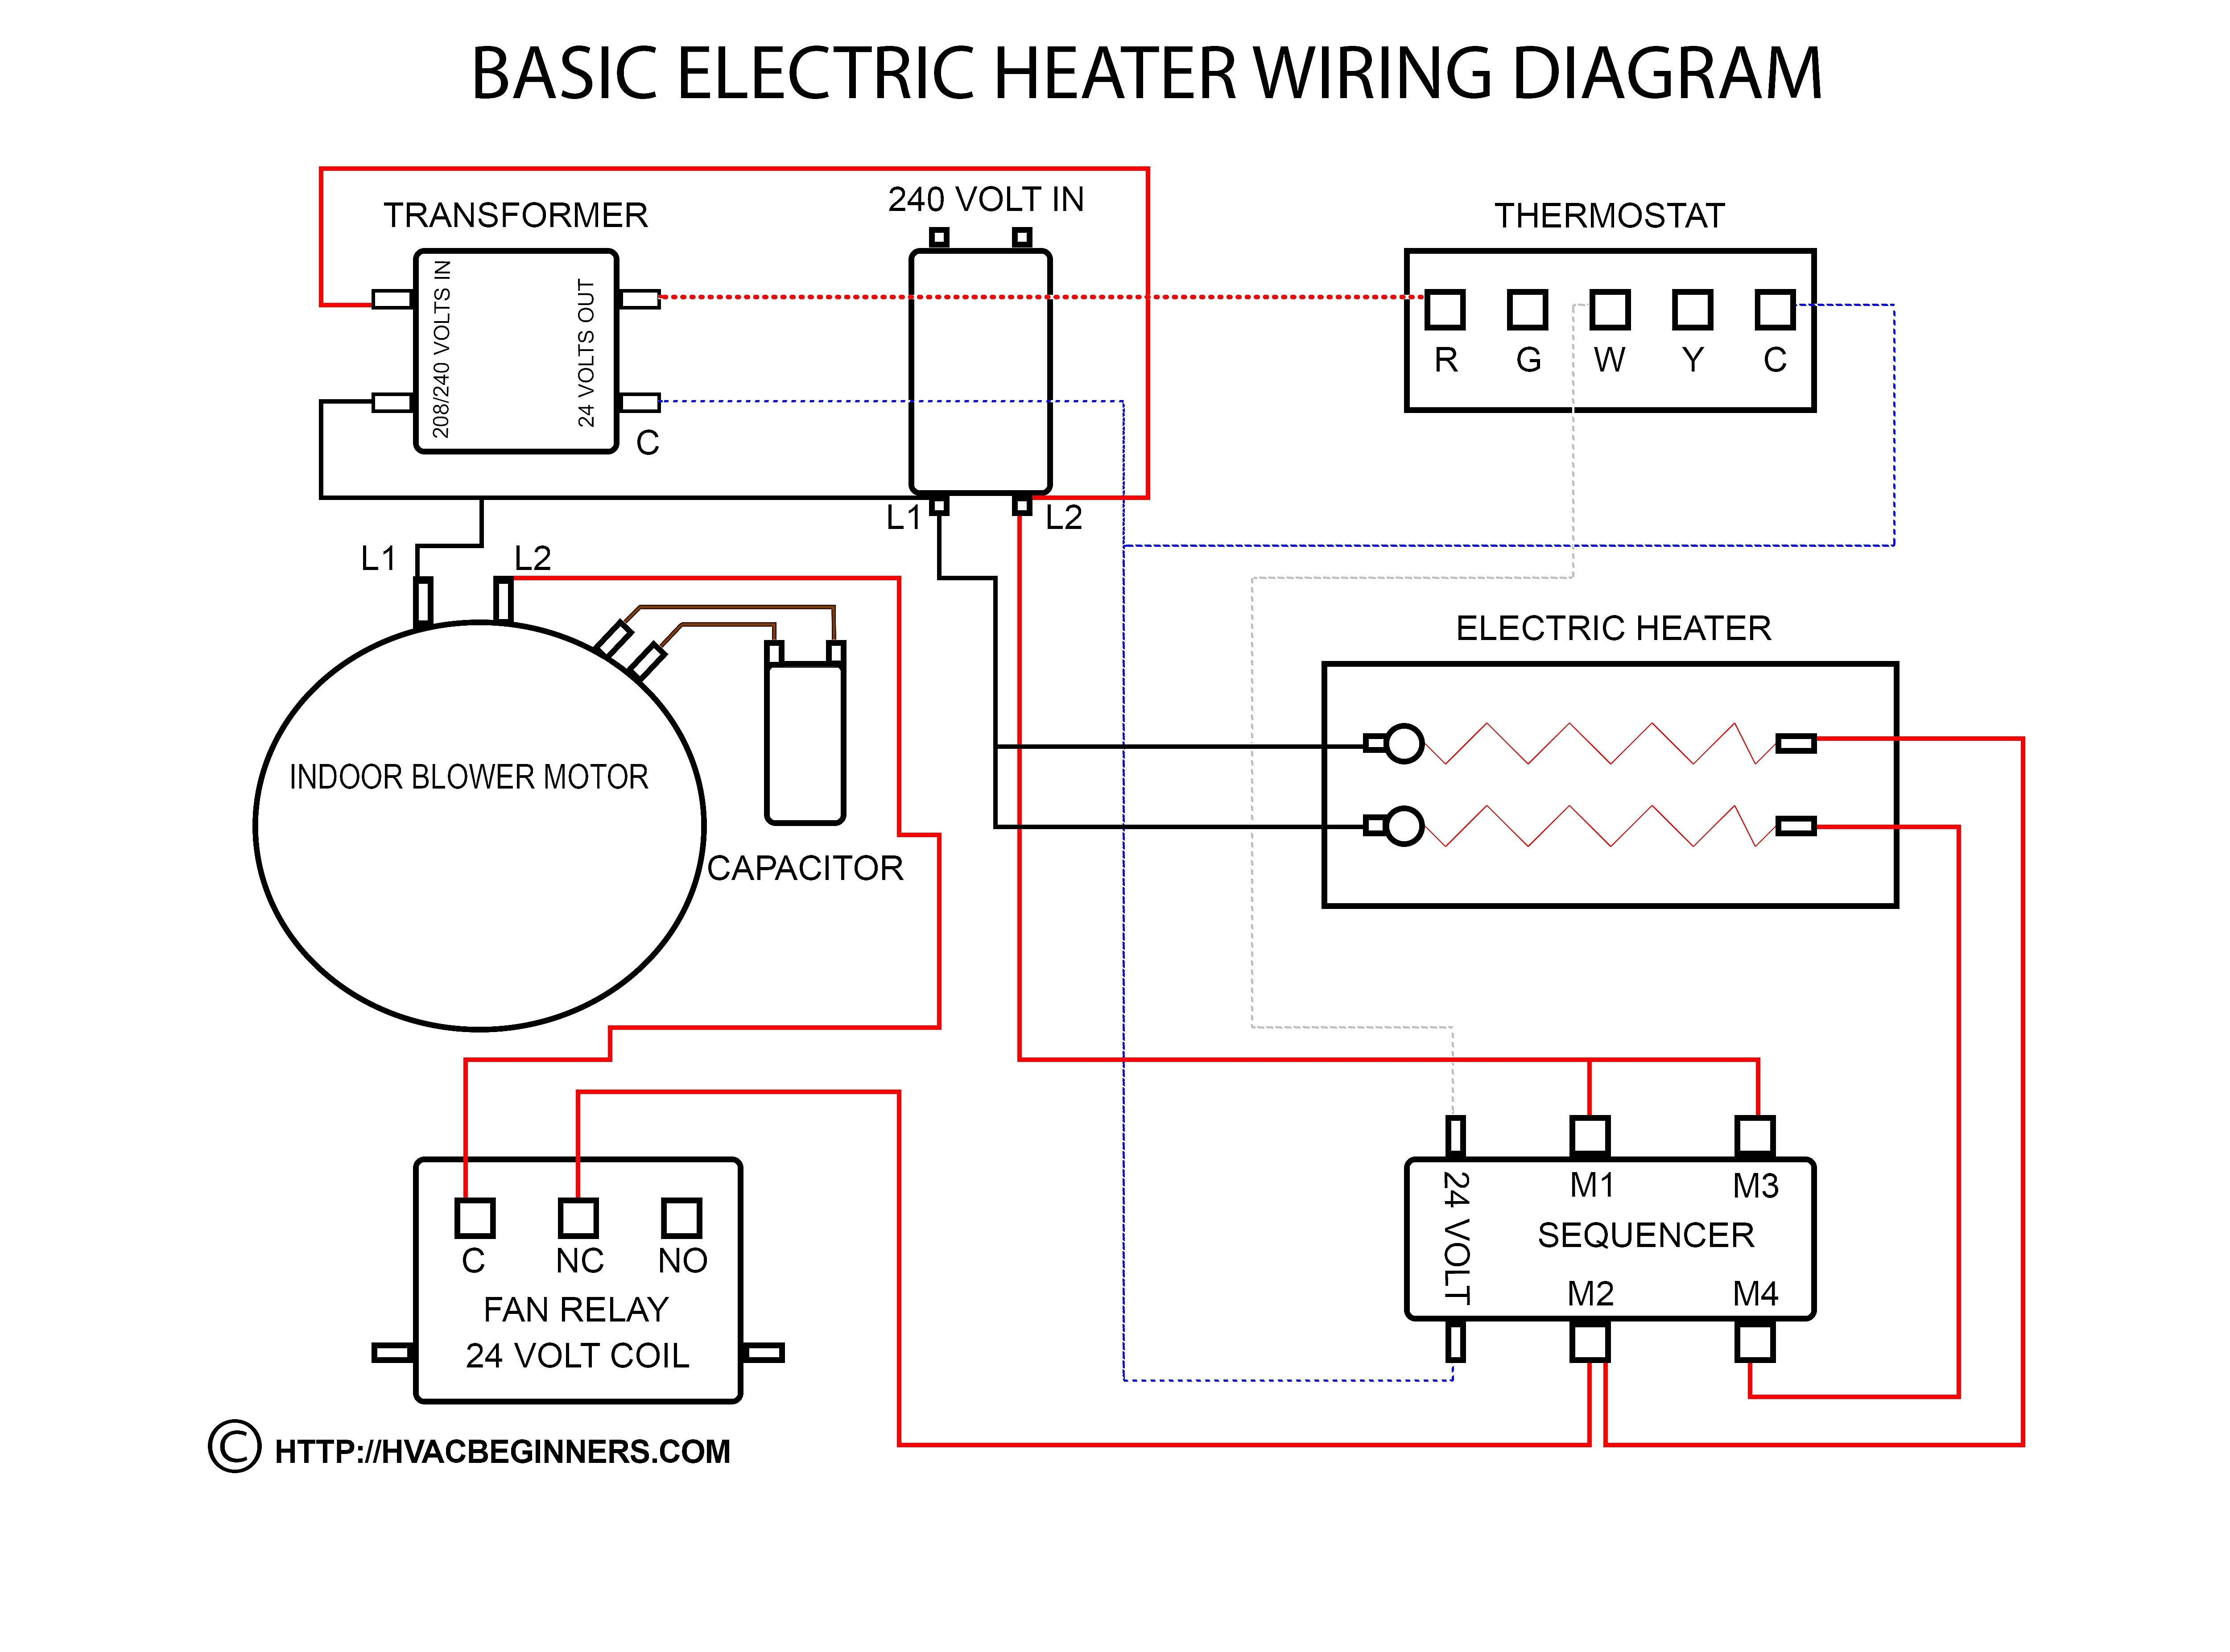 2 Wire thermostat Wiring Diagram Gas Furnace Wiring Diagram Excellent Appearance Muffle Wire Of 2 Wire thermostat Wiring Diagram